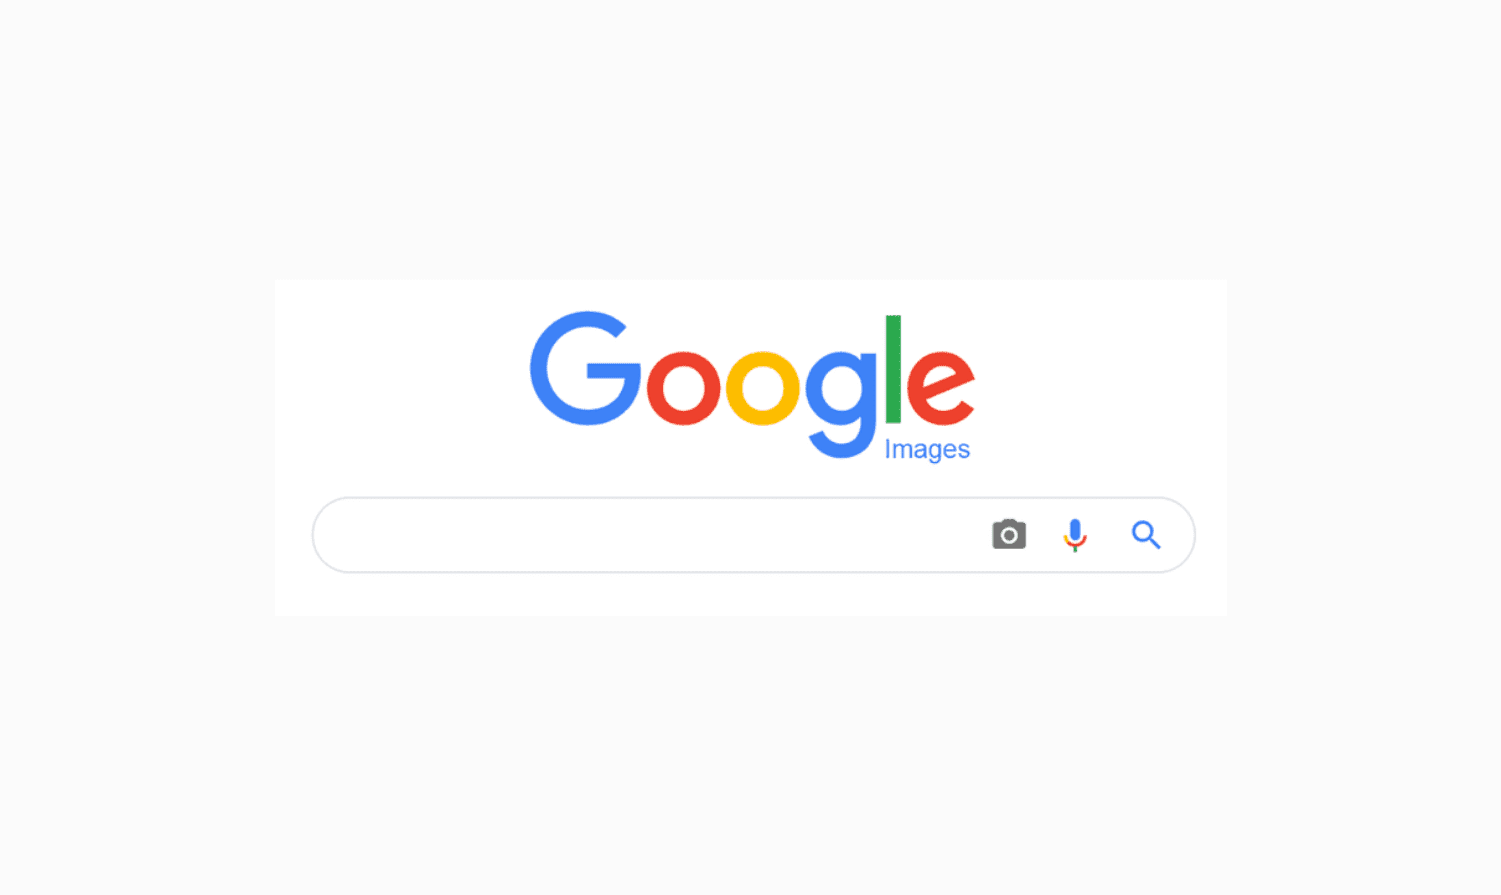 Google homepage with search bar.